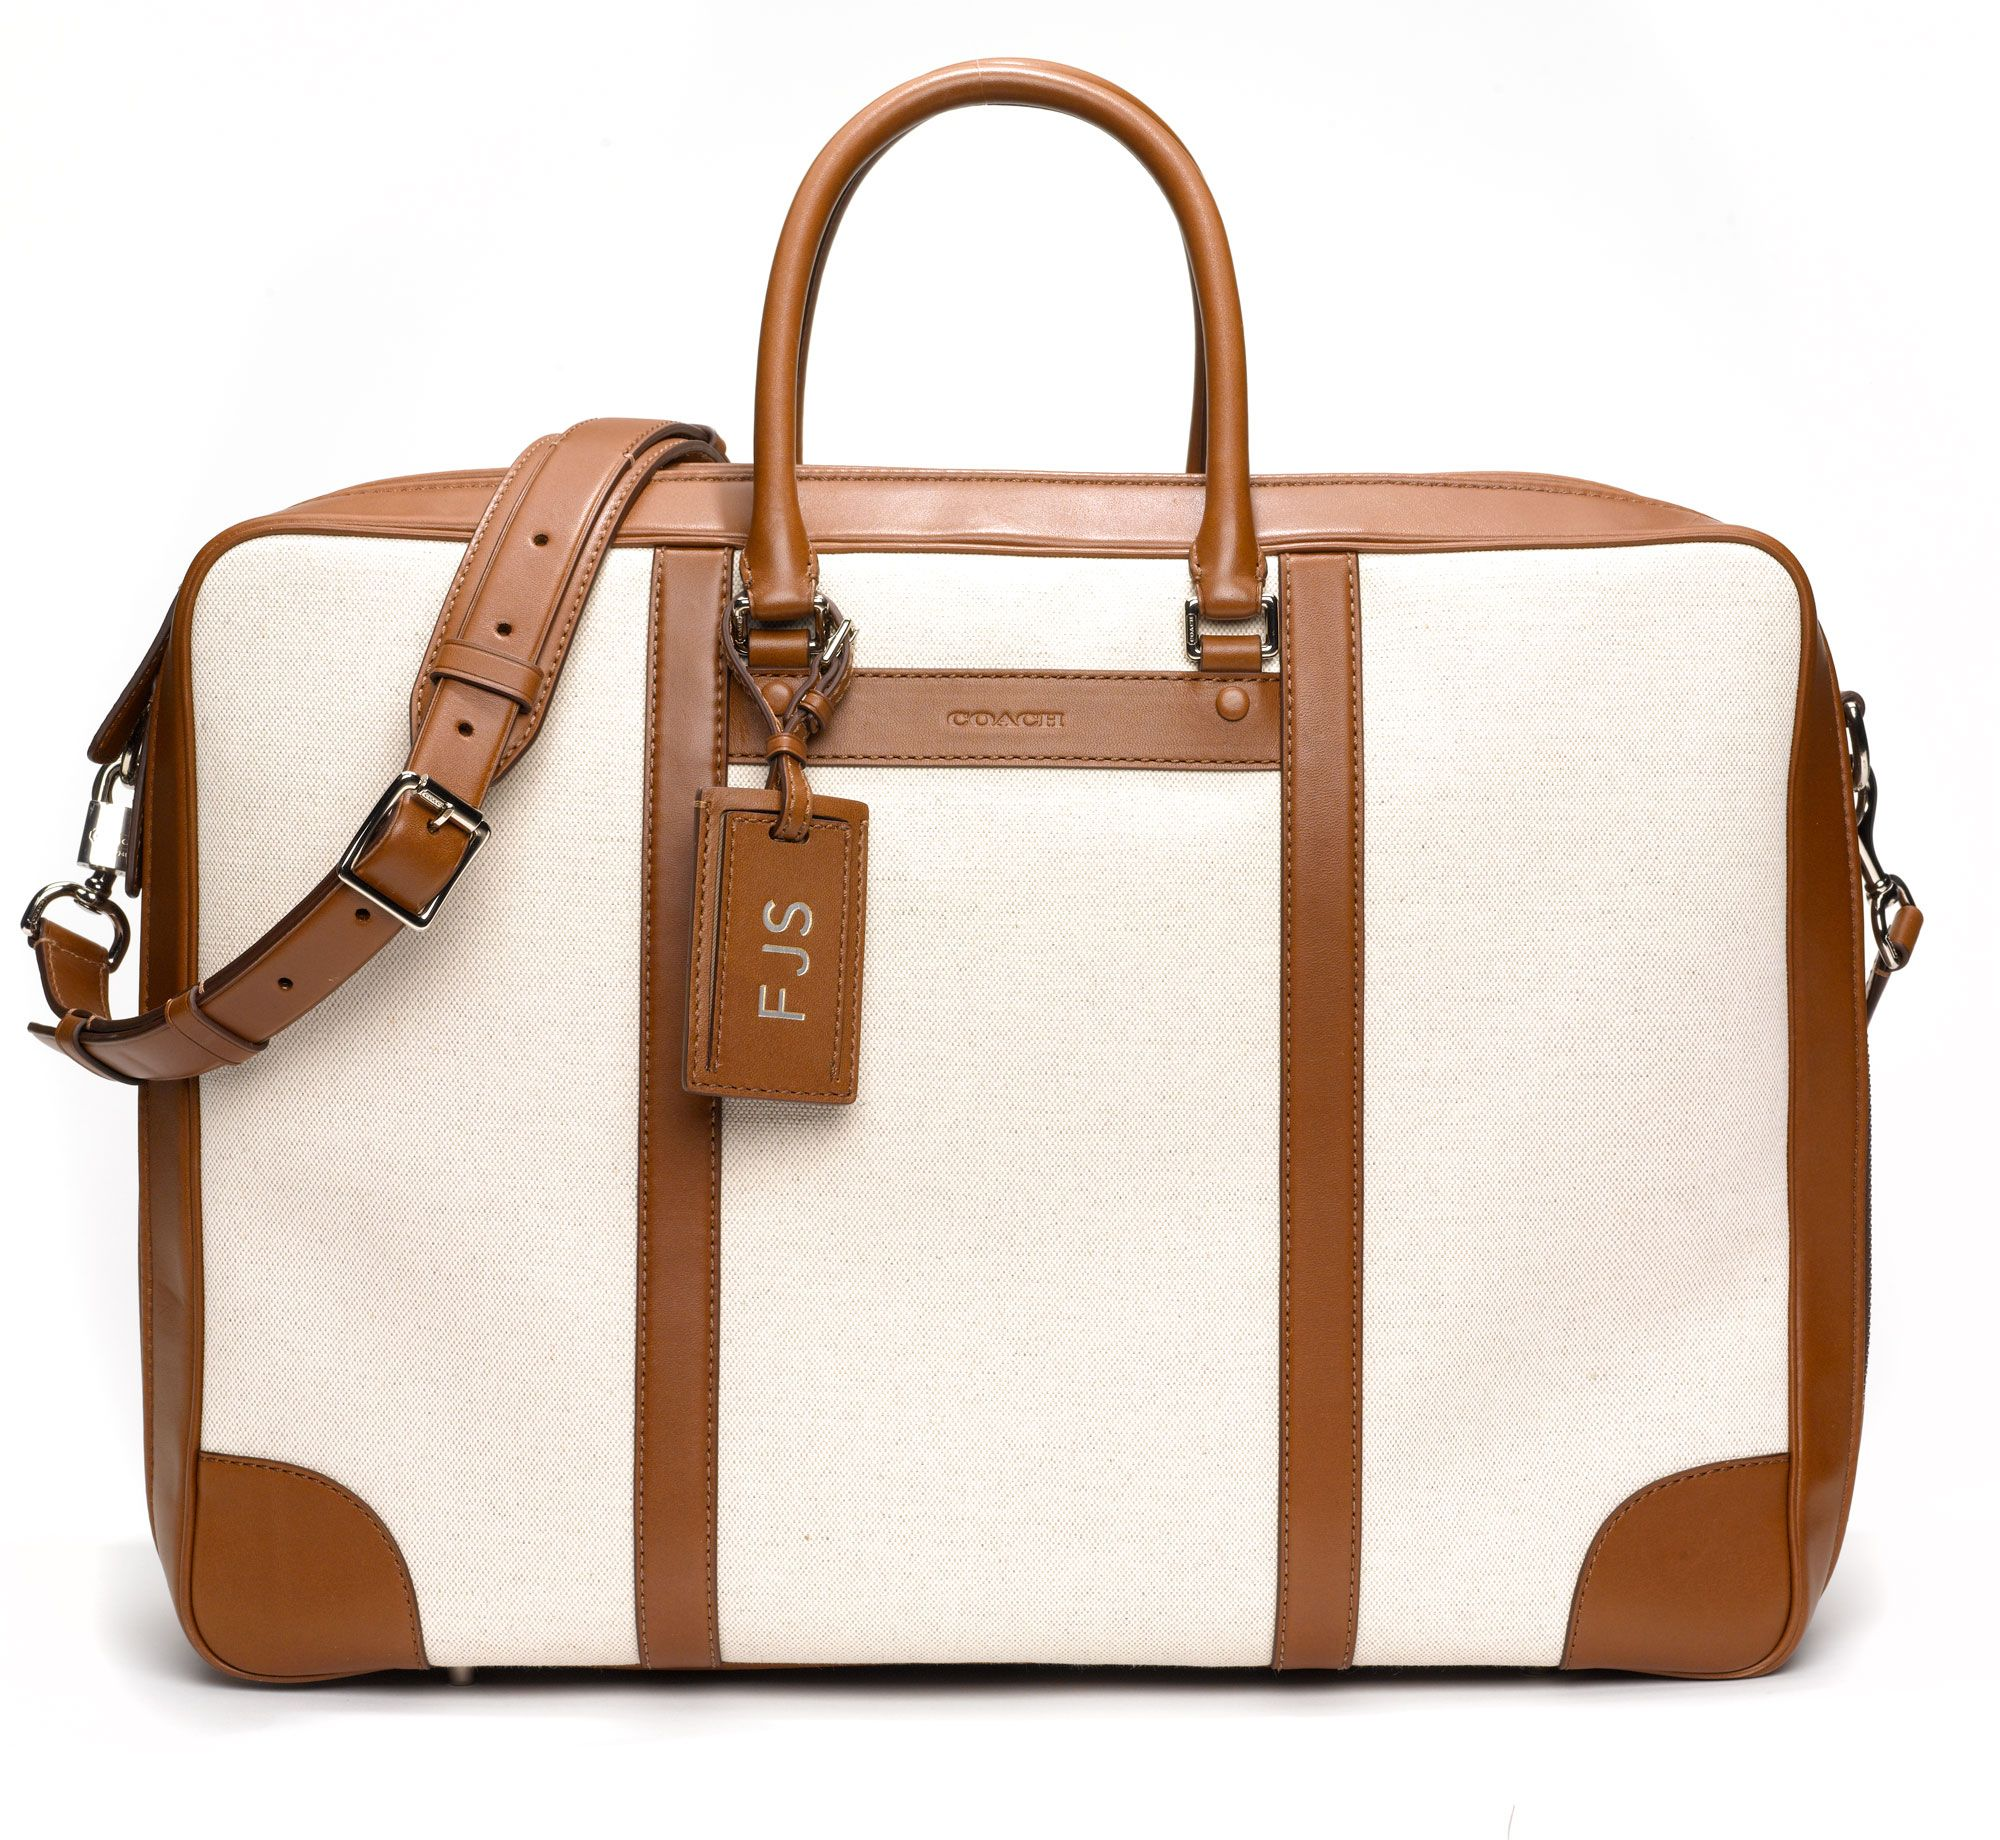 Something for Everyone - Coach suitcase, $698, coach.com.